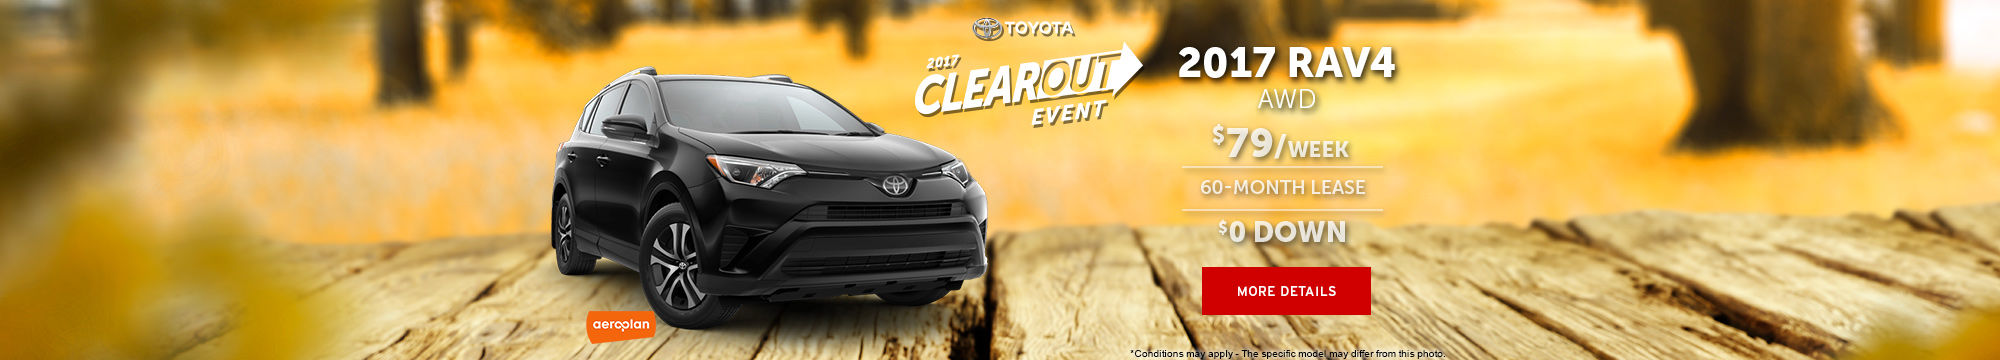 2017 Clearout Event - RAV4